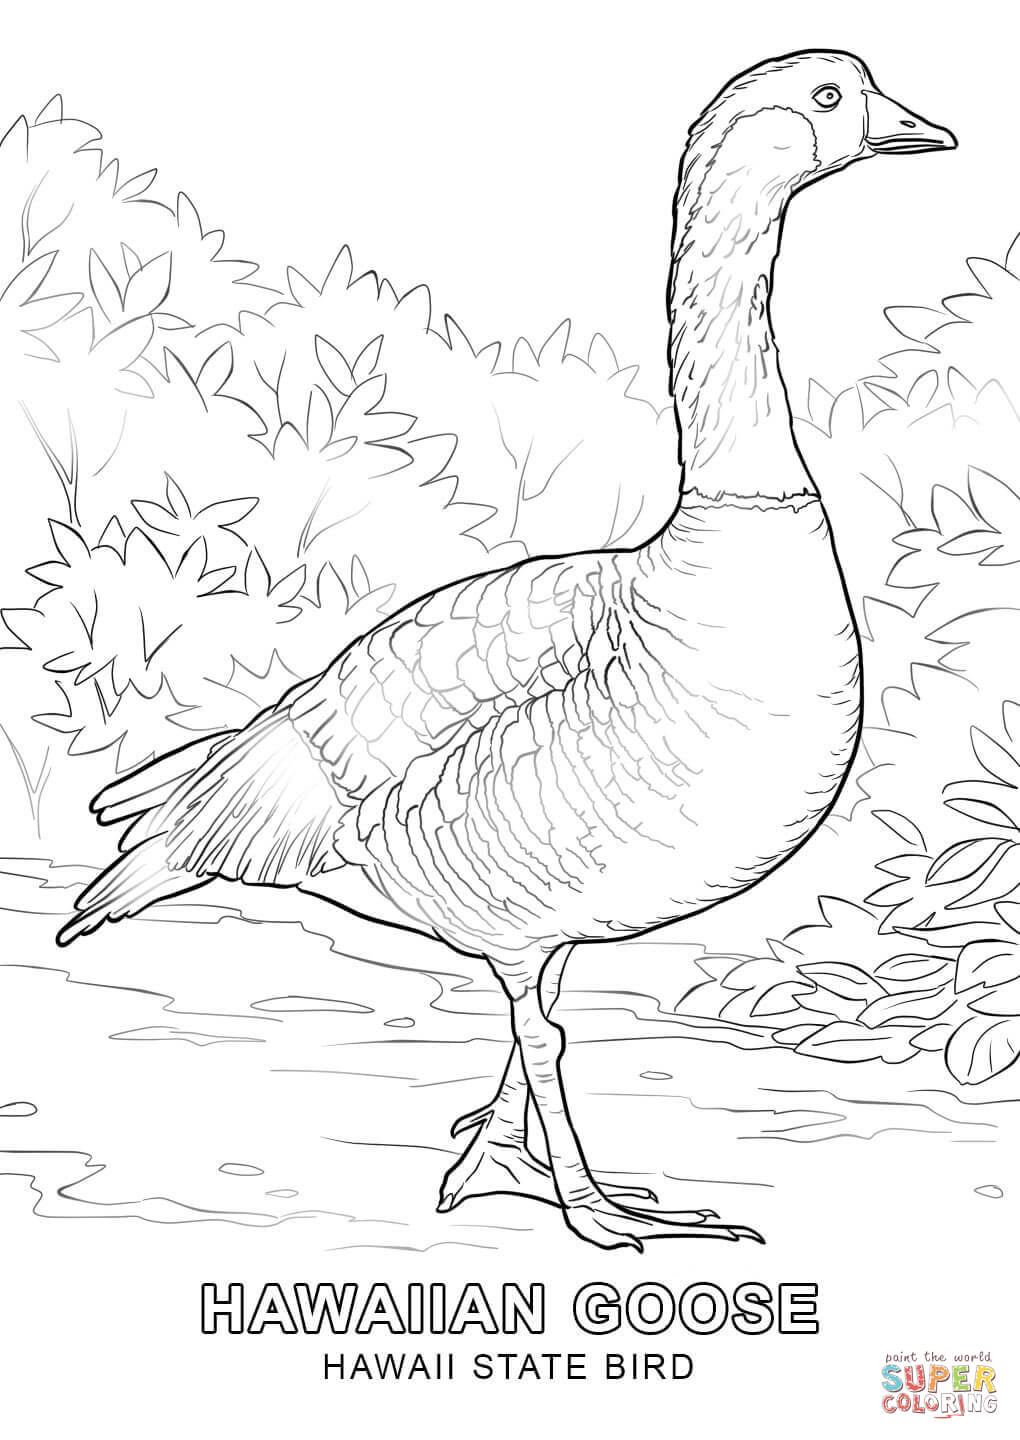 nevada state bird nevada state bird coloring page school project ideas nevada bird state